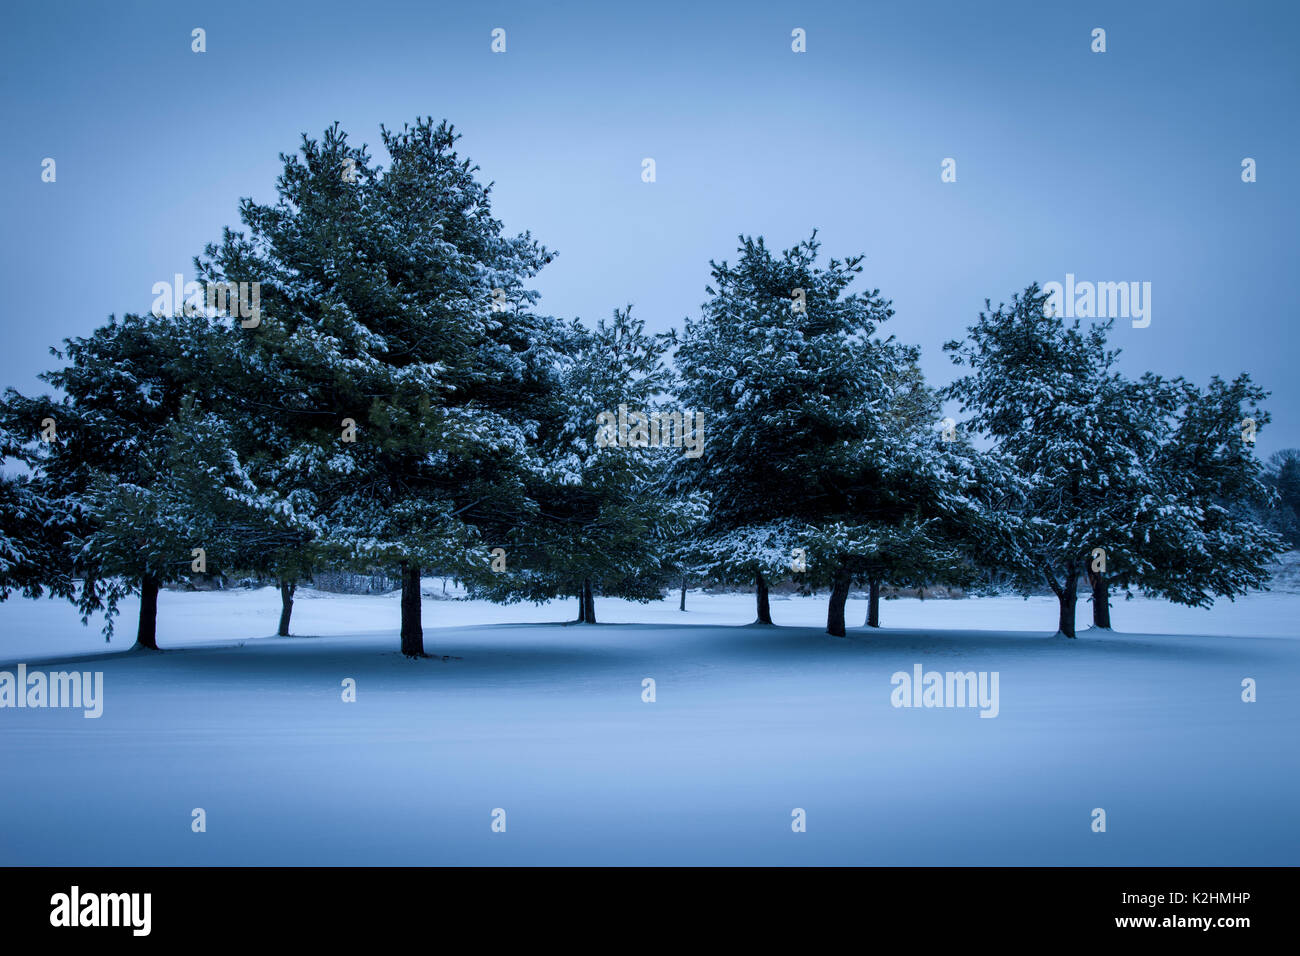 Evening Fresh snow fall on evergreen trees - Stock Image